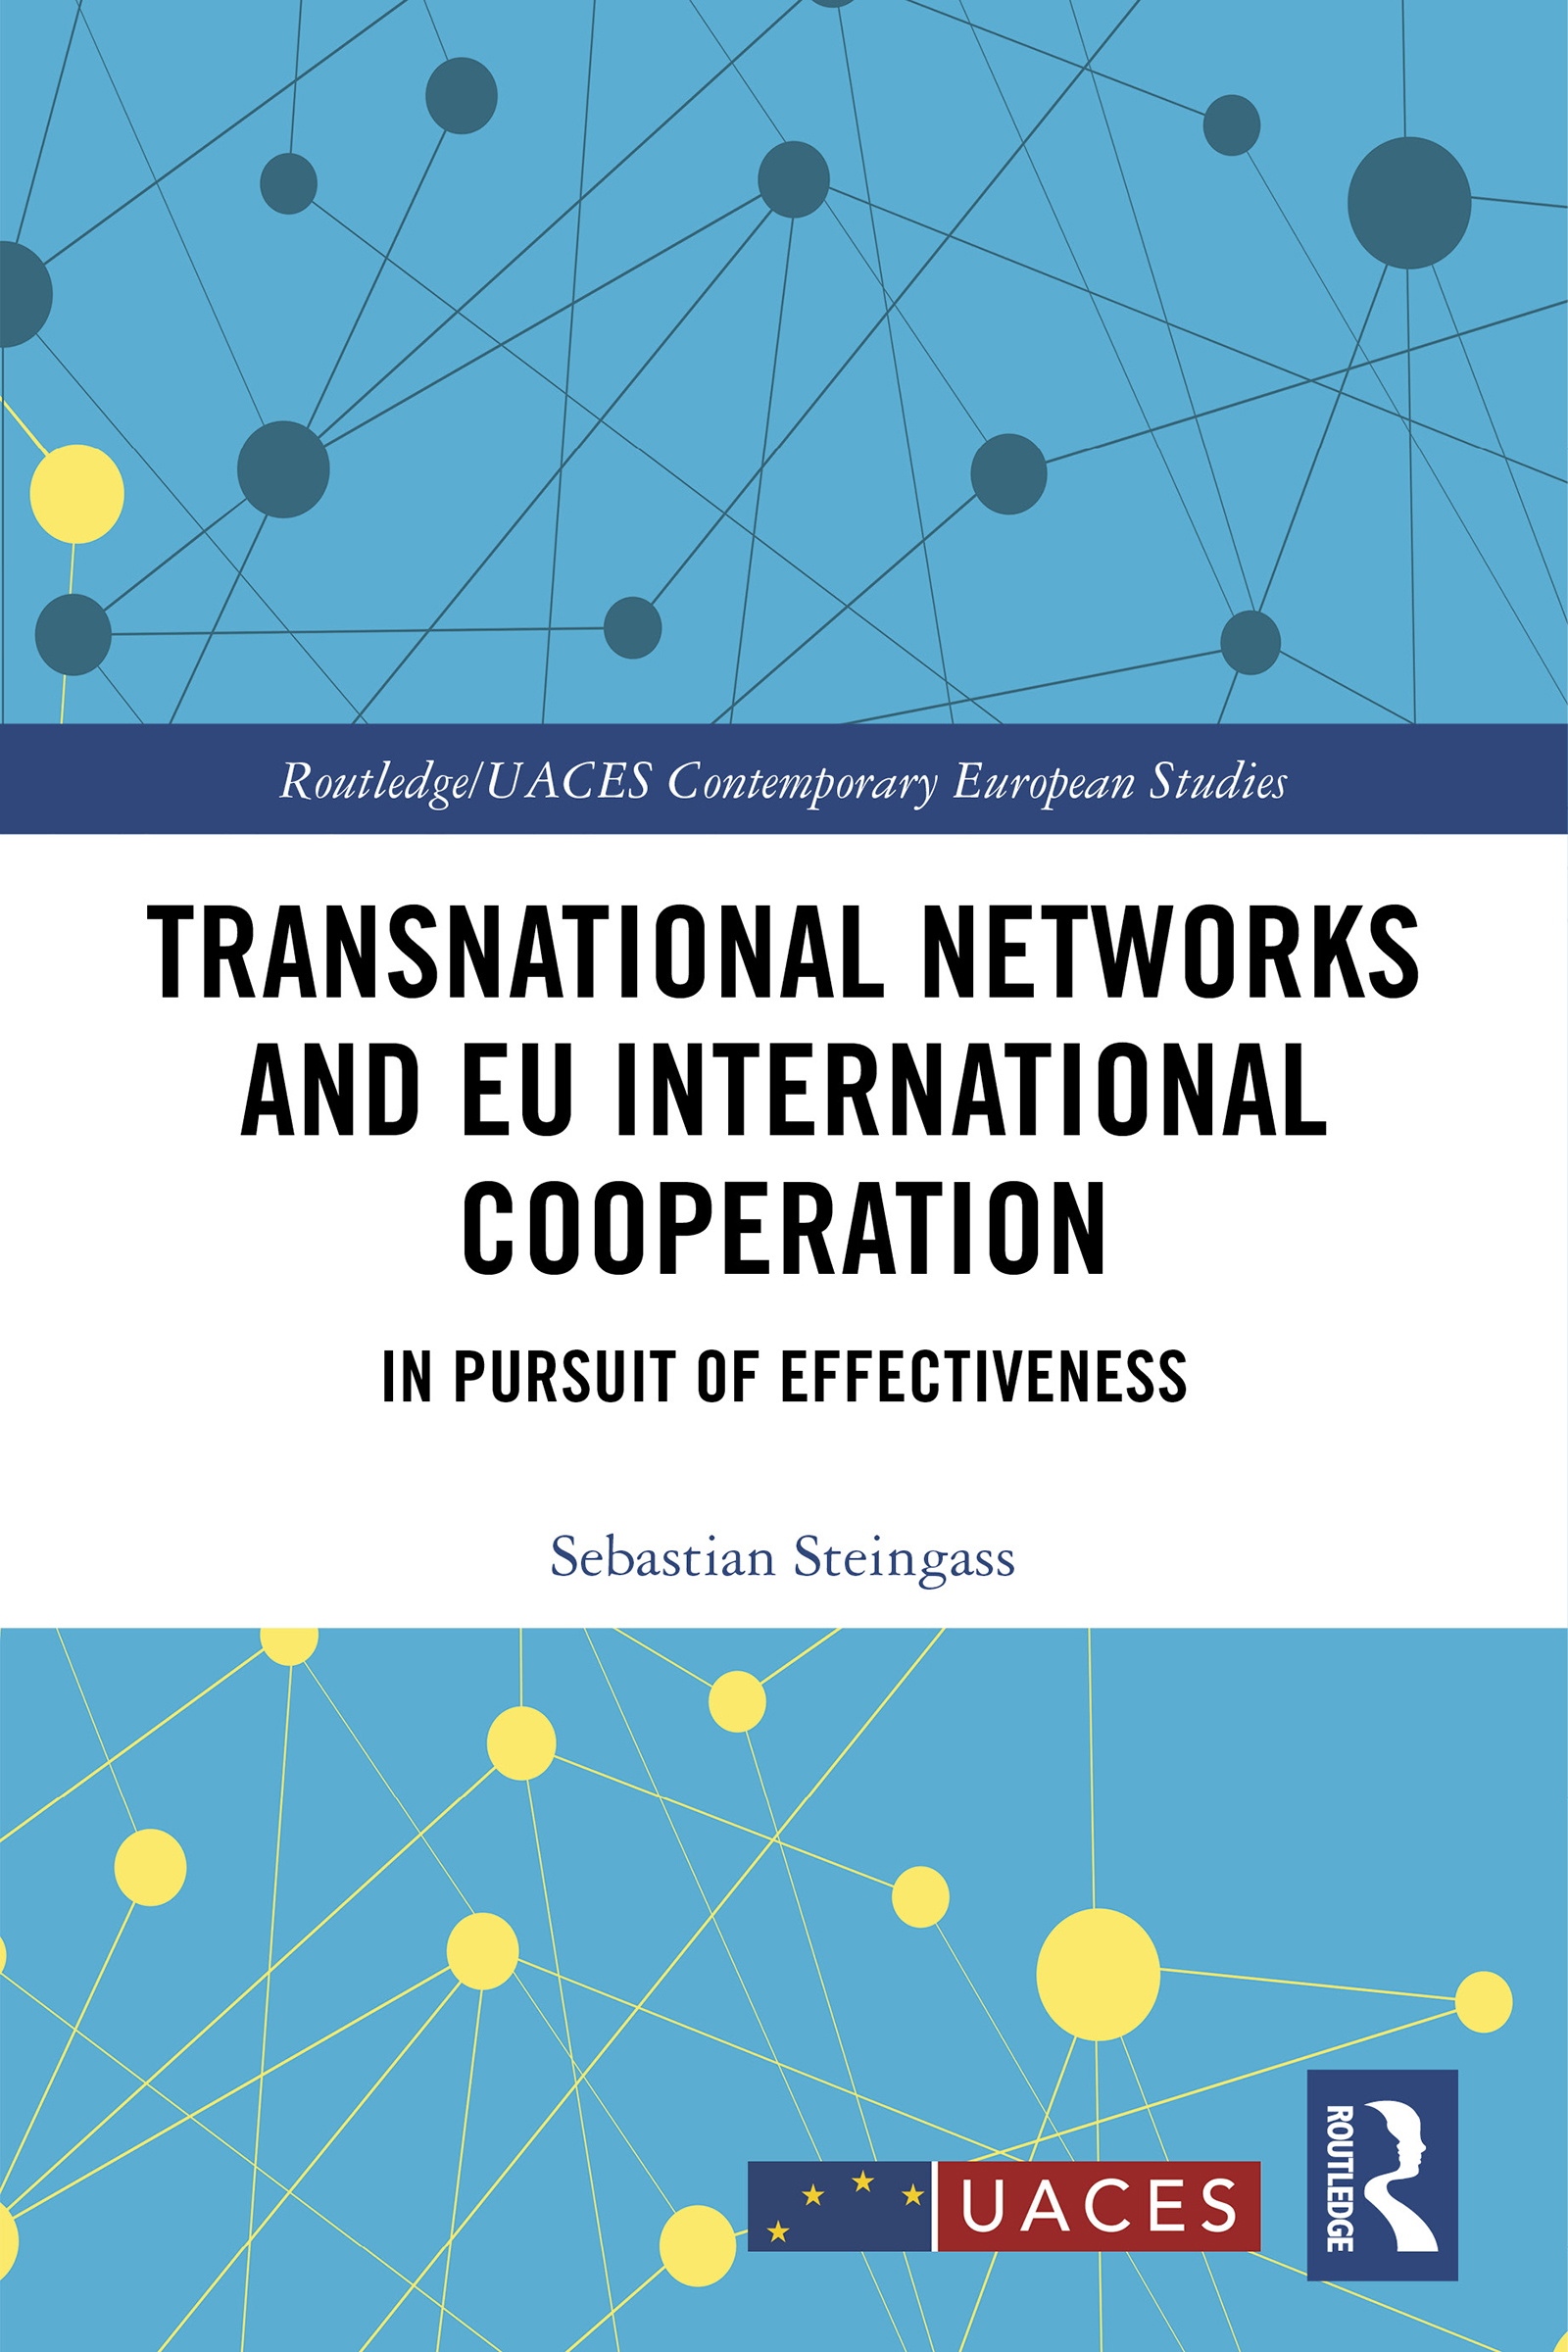 Transnational Networks and EU International Cooperation